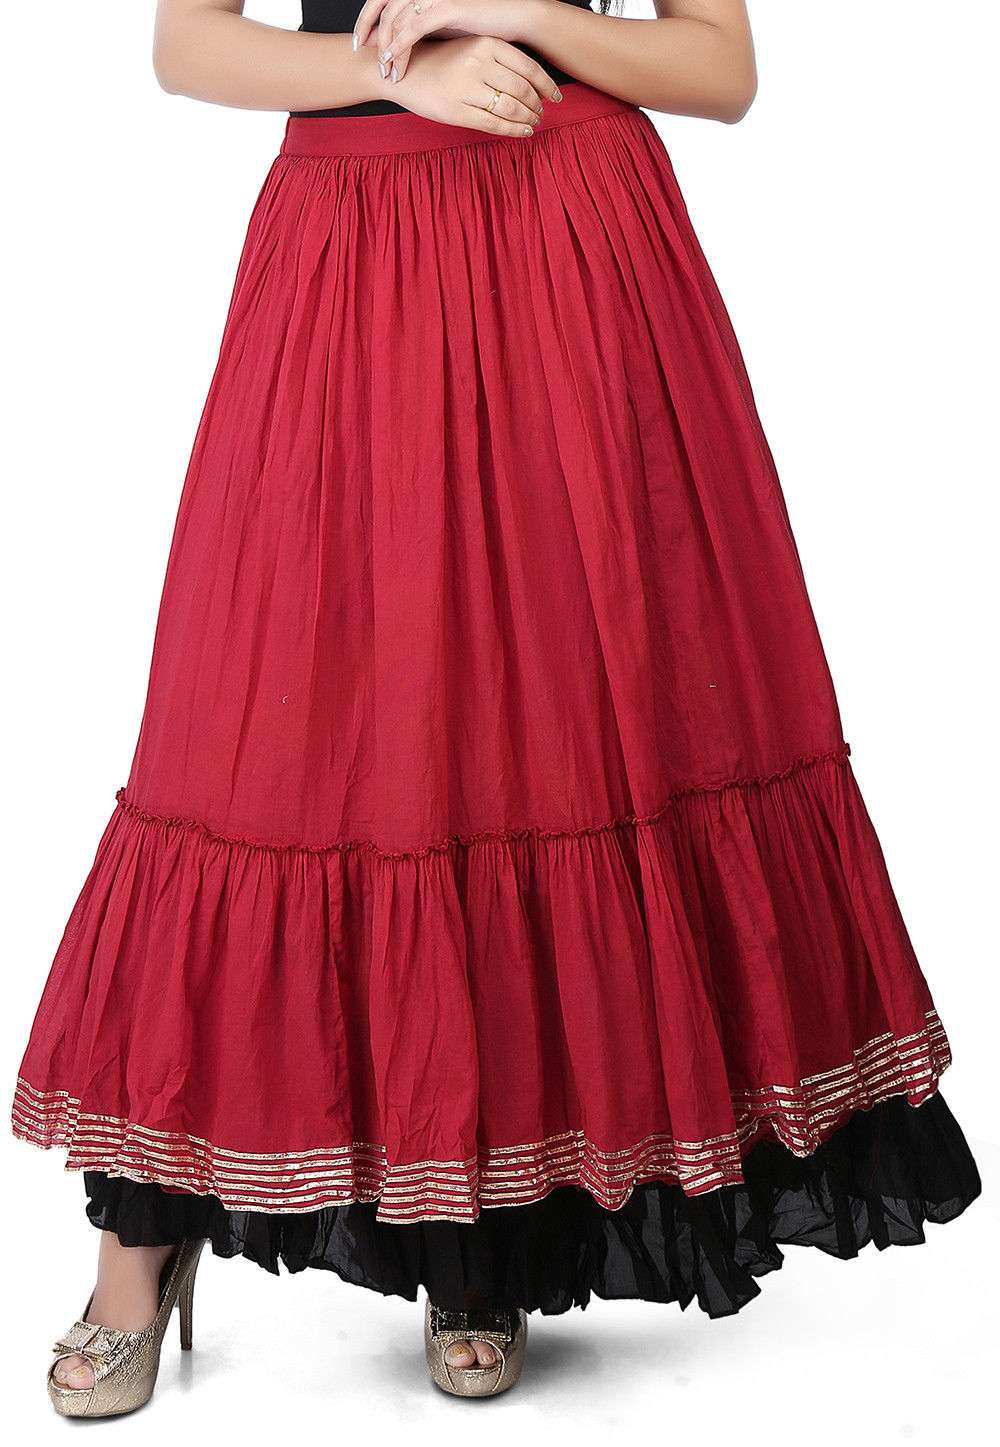 Plain Cotton Mulmul Long Skirt in Maroon